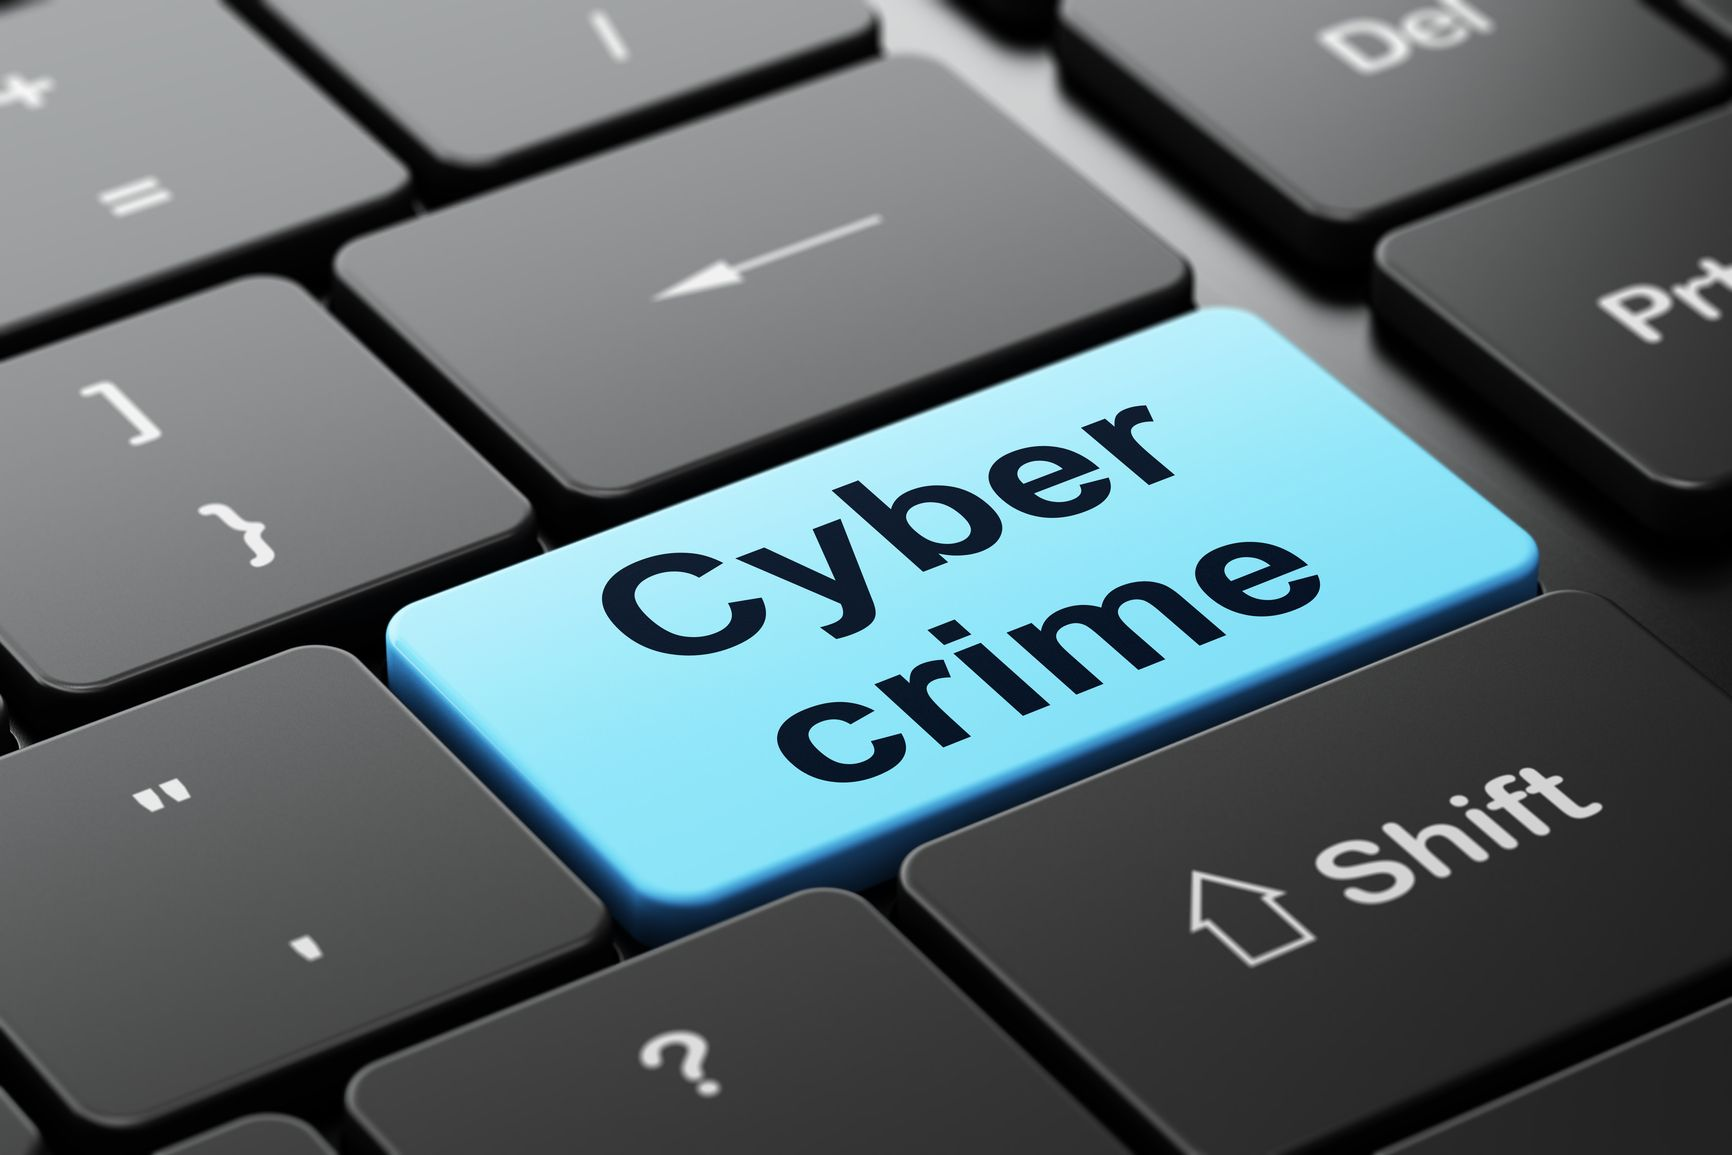 Cyber criminals pose threats to Nigeria's economy, NSA says